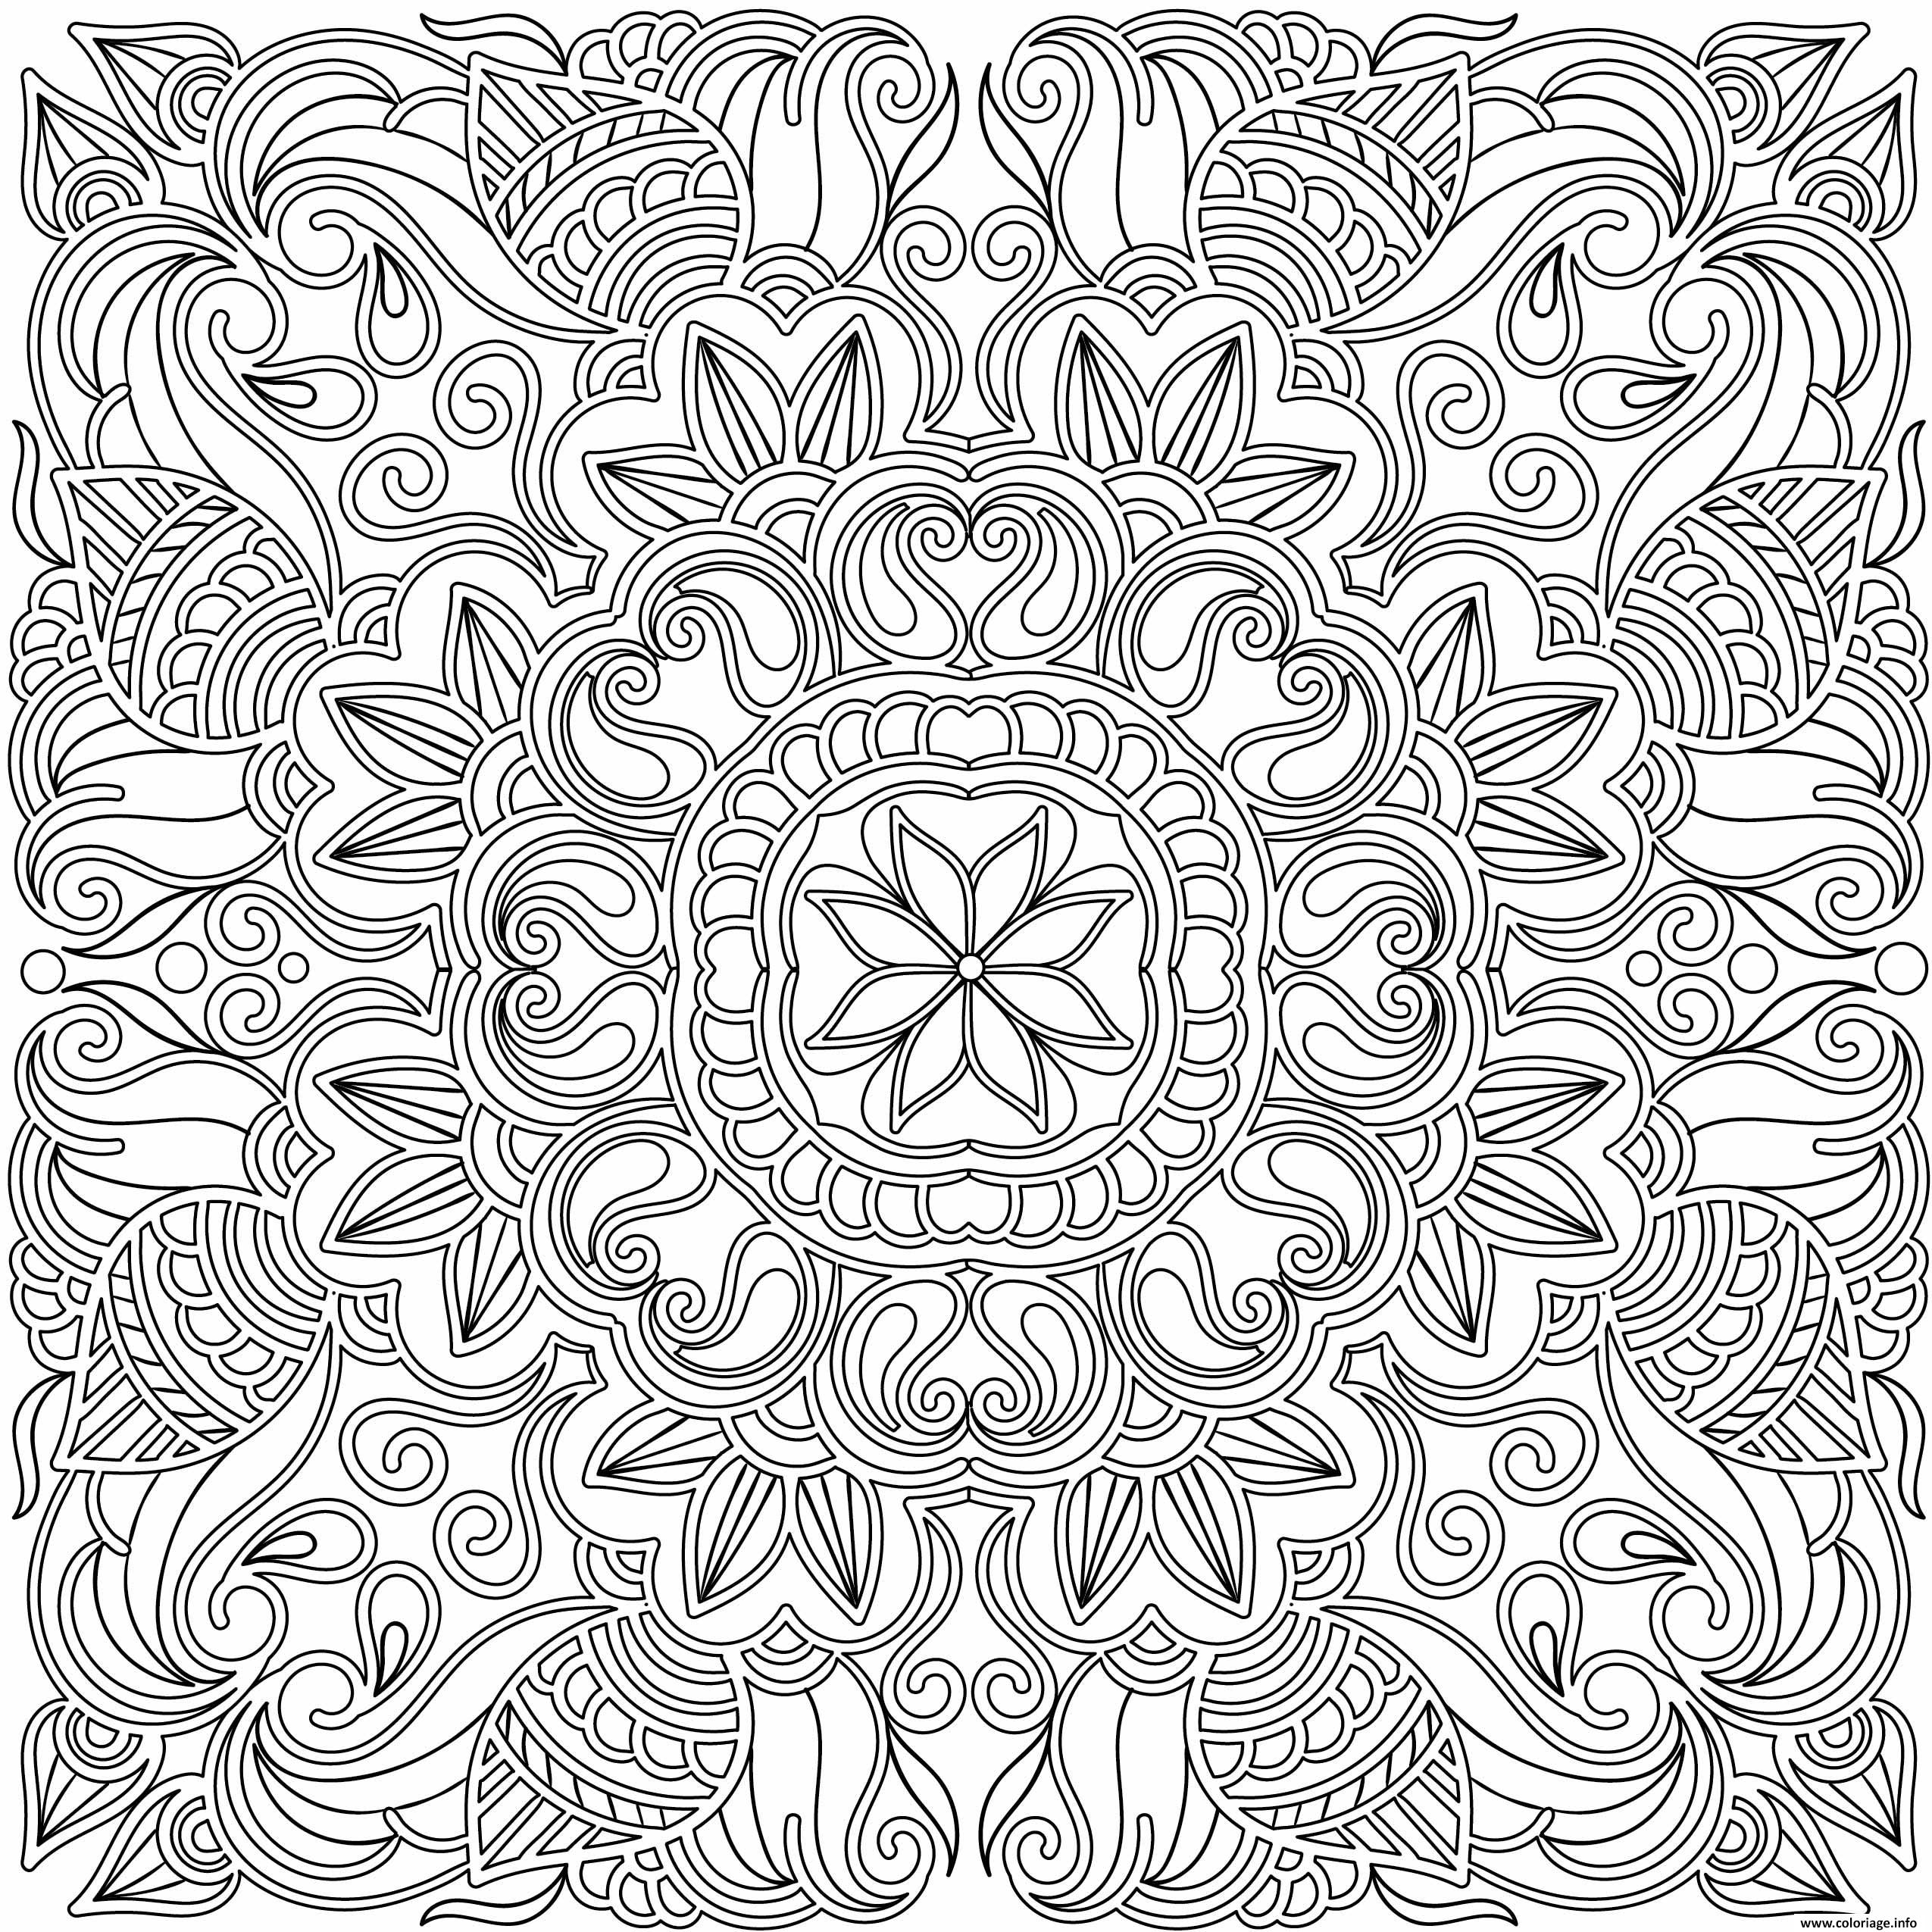 coloriage adulte mandala doodle. Black Bedroom Furniture Sets. Home Design Ideas